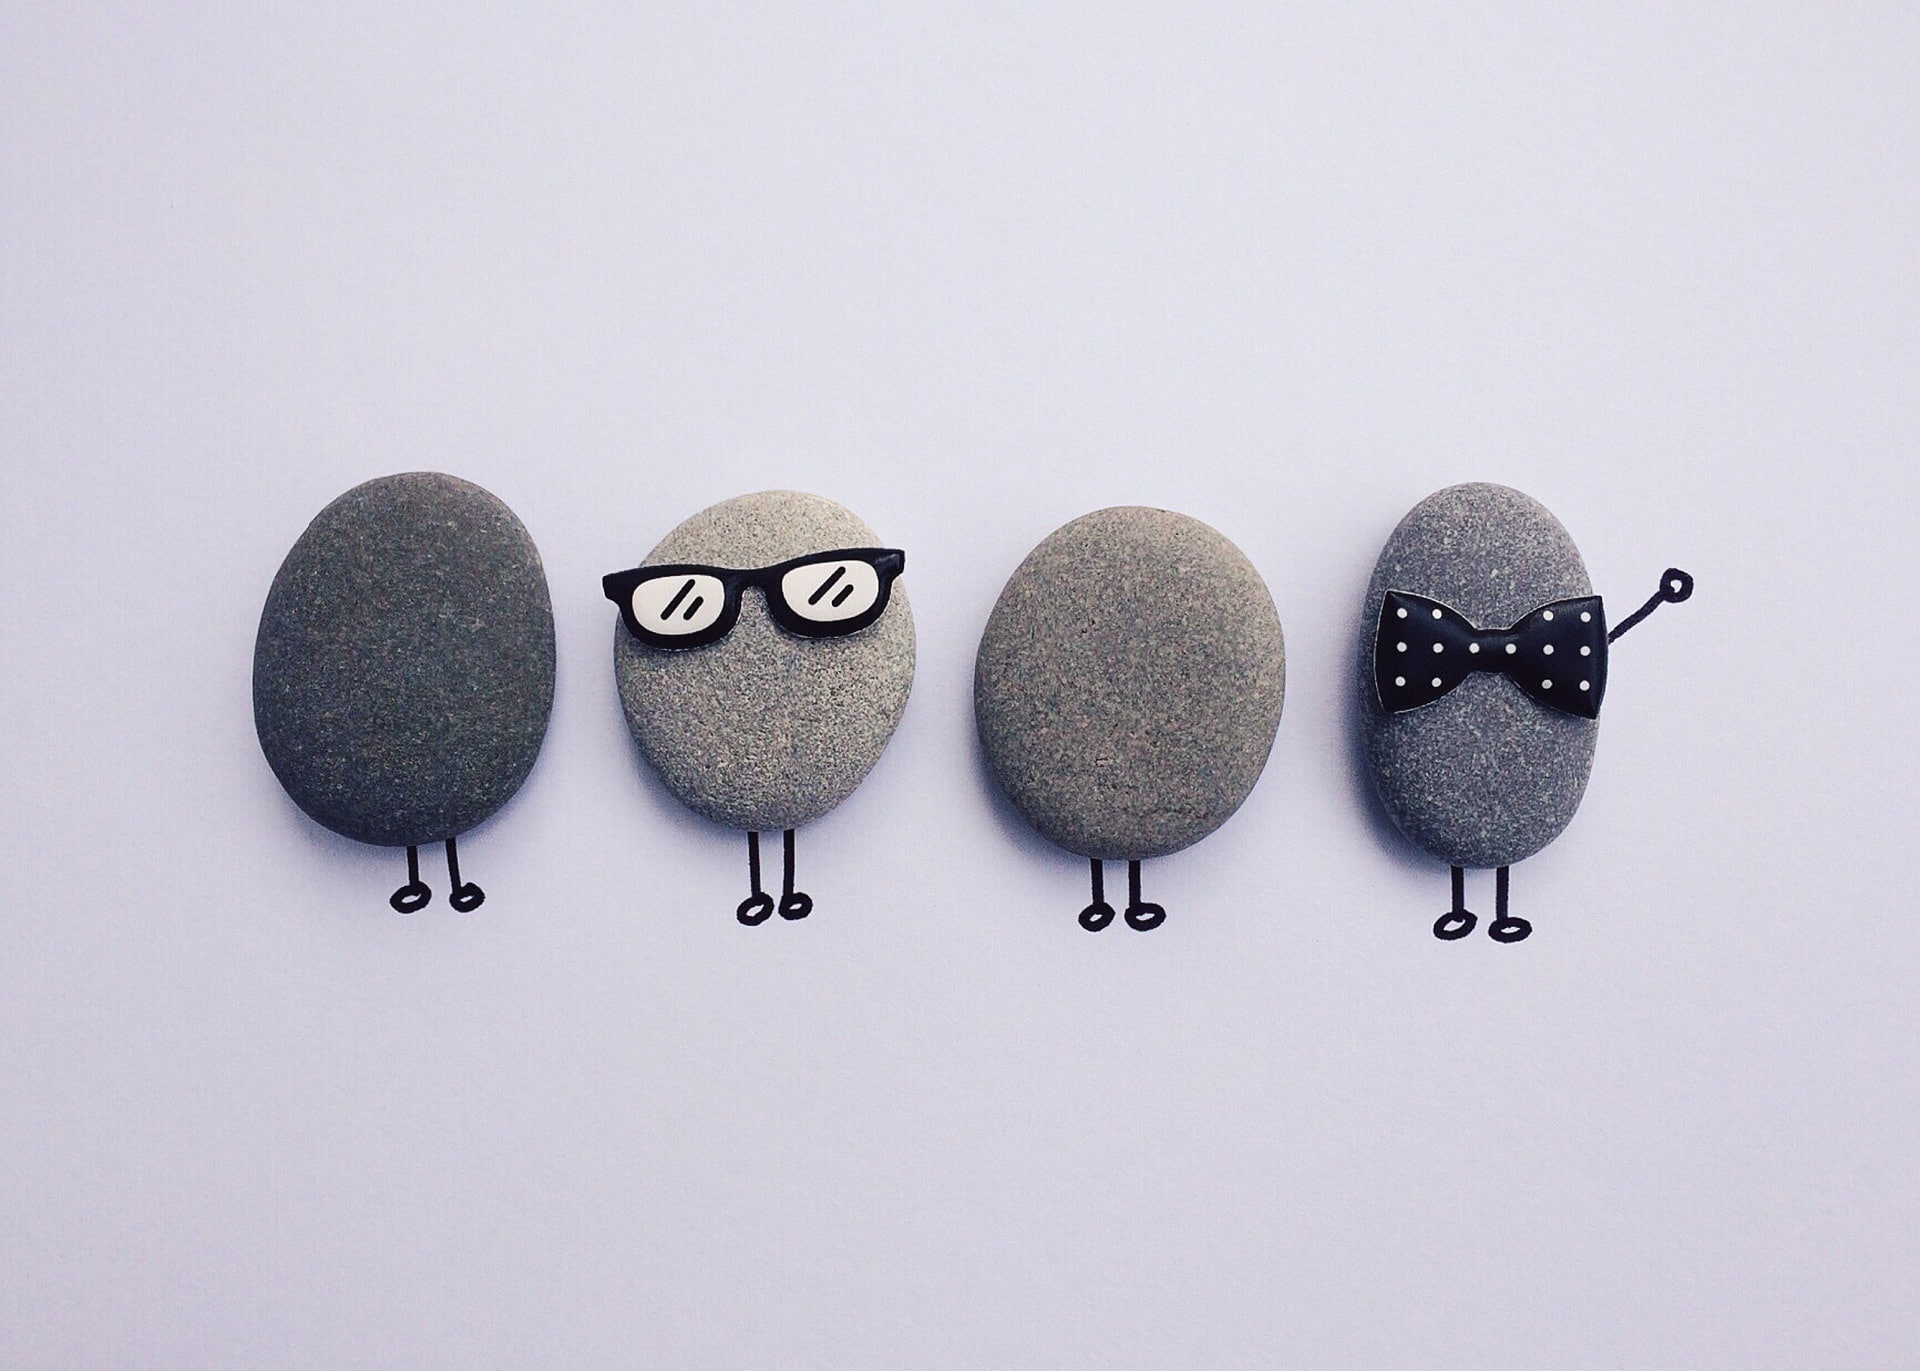 Four human like rocks with legs. One wearing shades and another wearing a bow tie